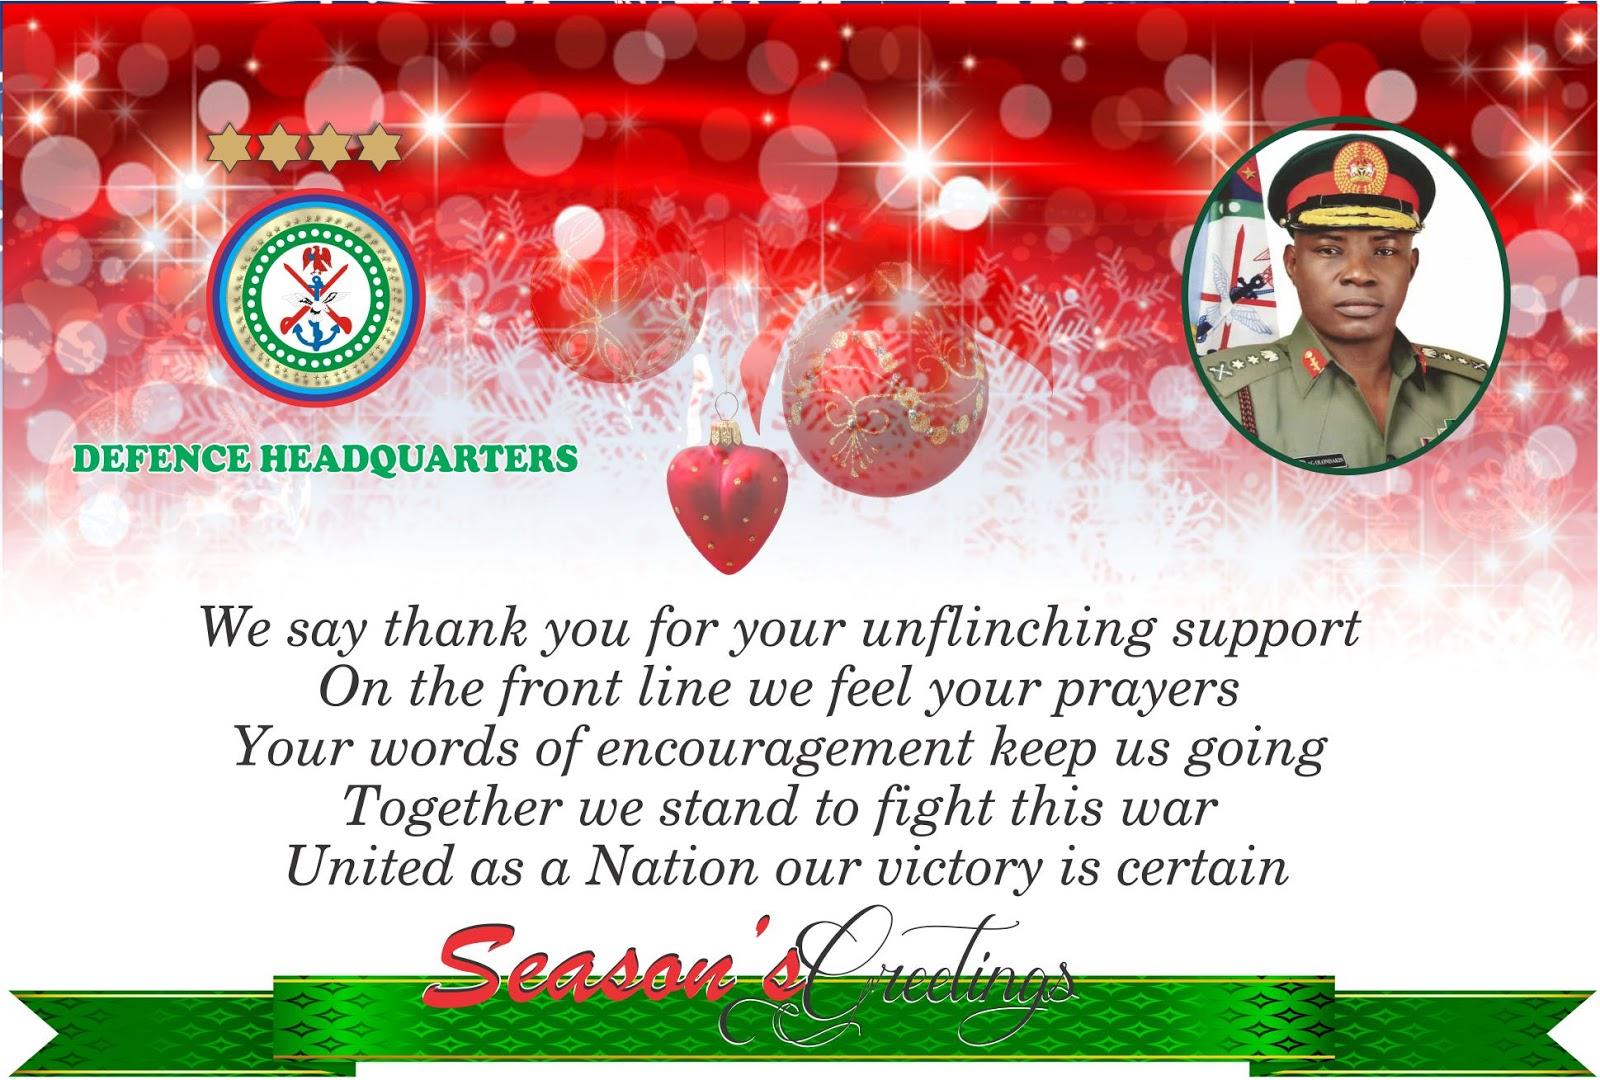 Welcome to ireportinglive nigeria military seasons greetings to all soldiers kristyandbryce Images